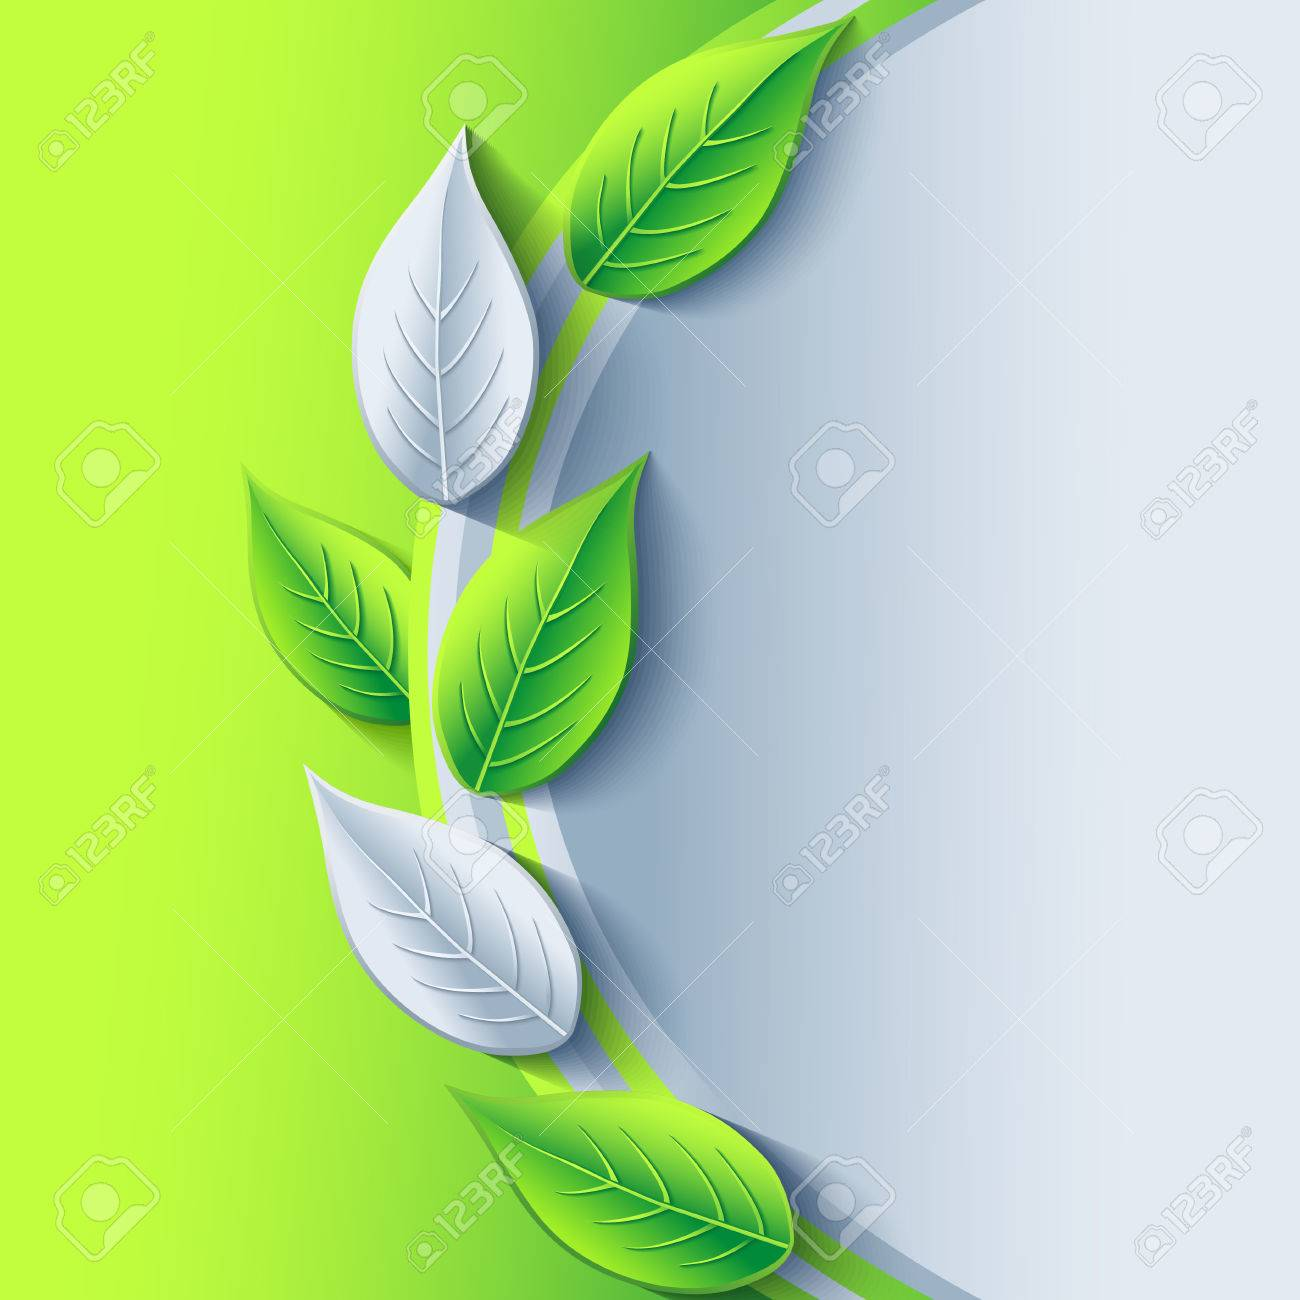 Eco stylish background with green and gray 3d leaves